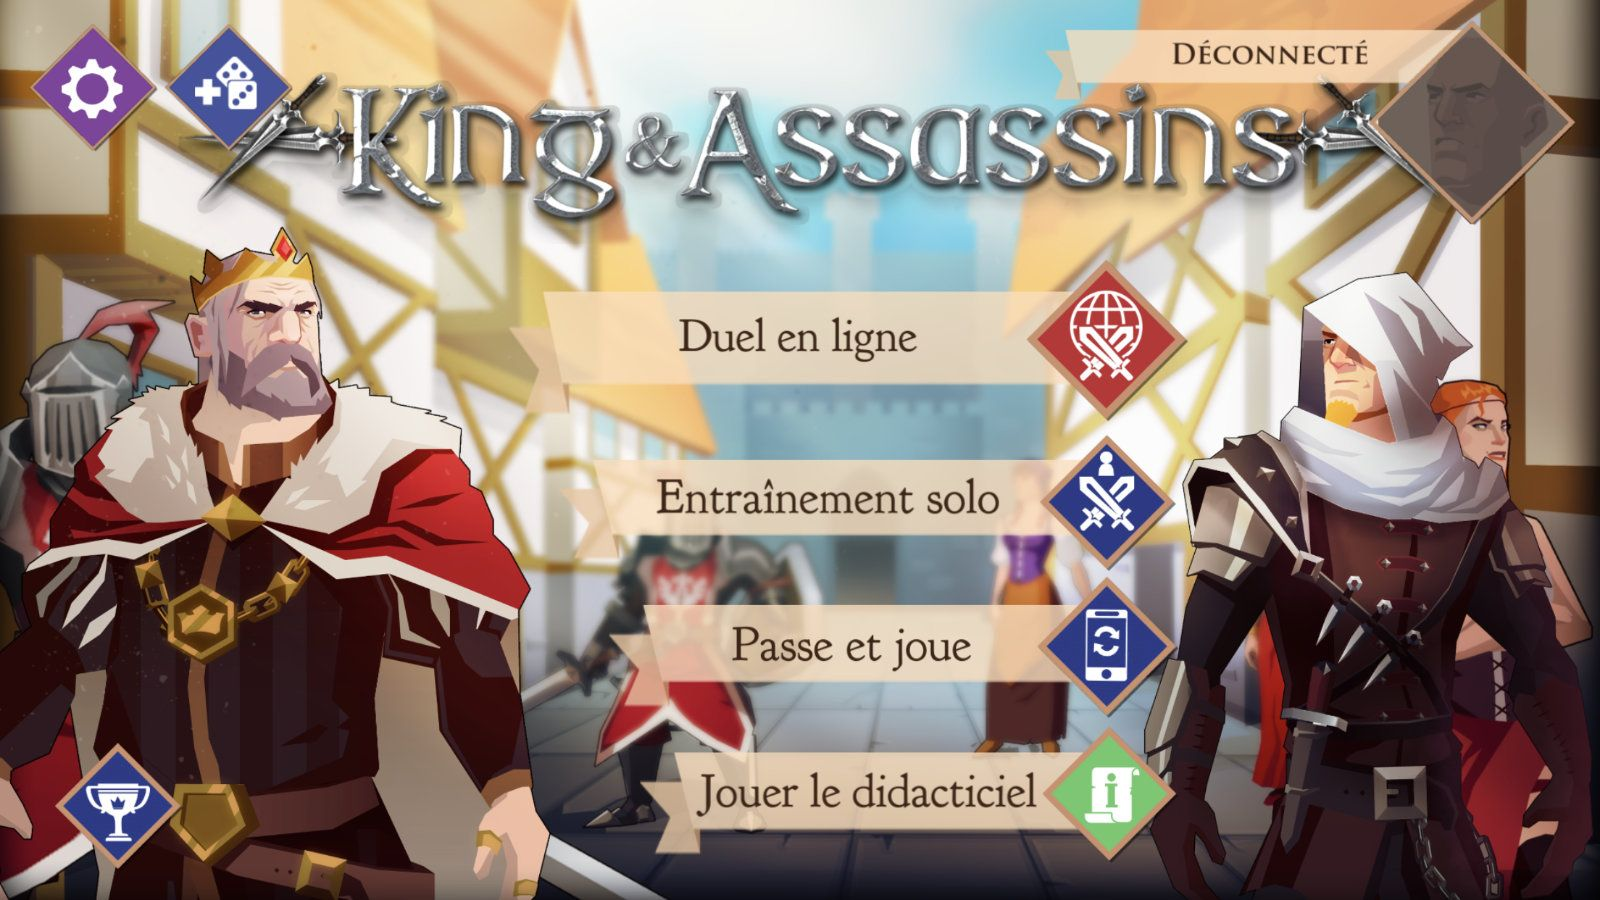 King and Assassins (copie d'écran 1 sur iPhone / iPad)